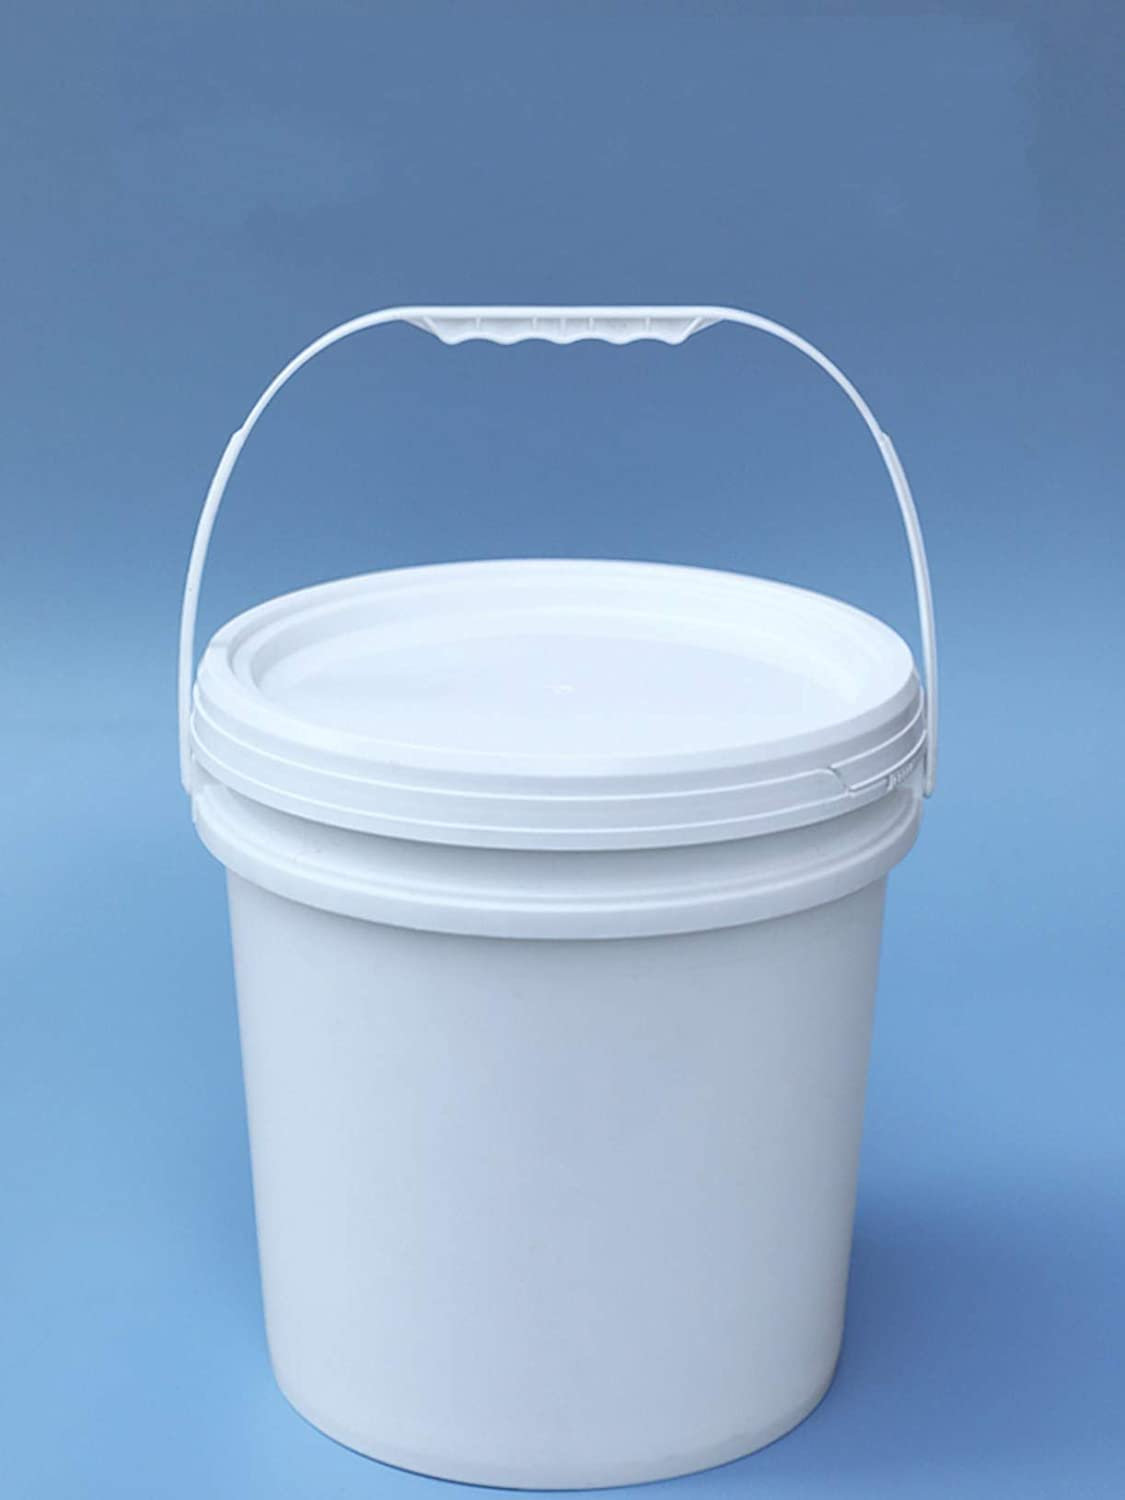 WellieSTR 2 Pack (5L White) Plastic Bucket with Lid and Handle Food Grade Container Leakproof,Food Storage Container